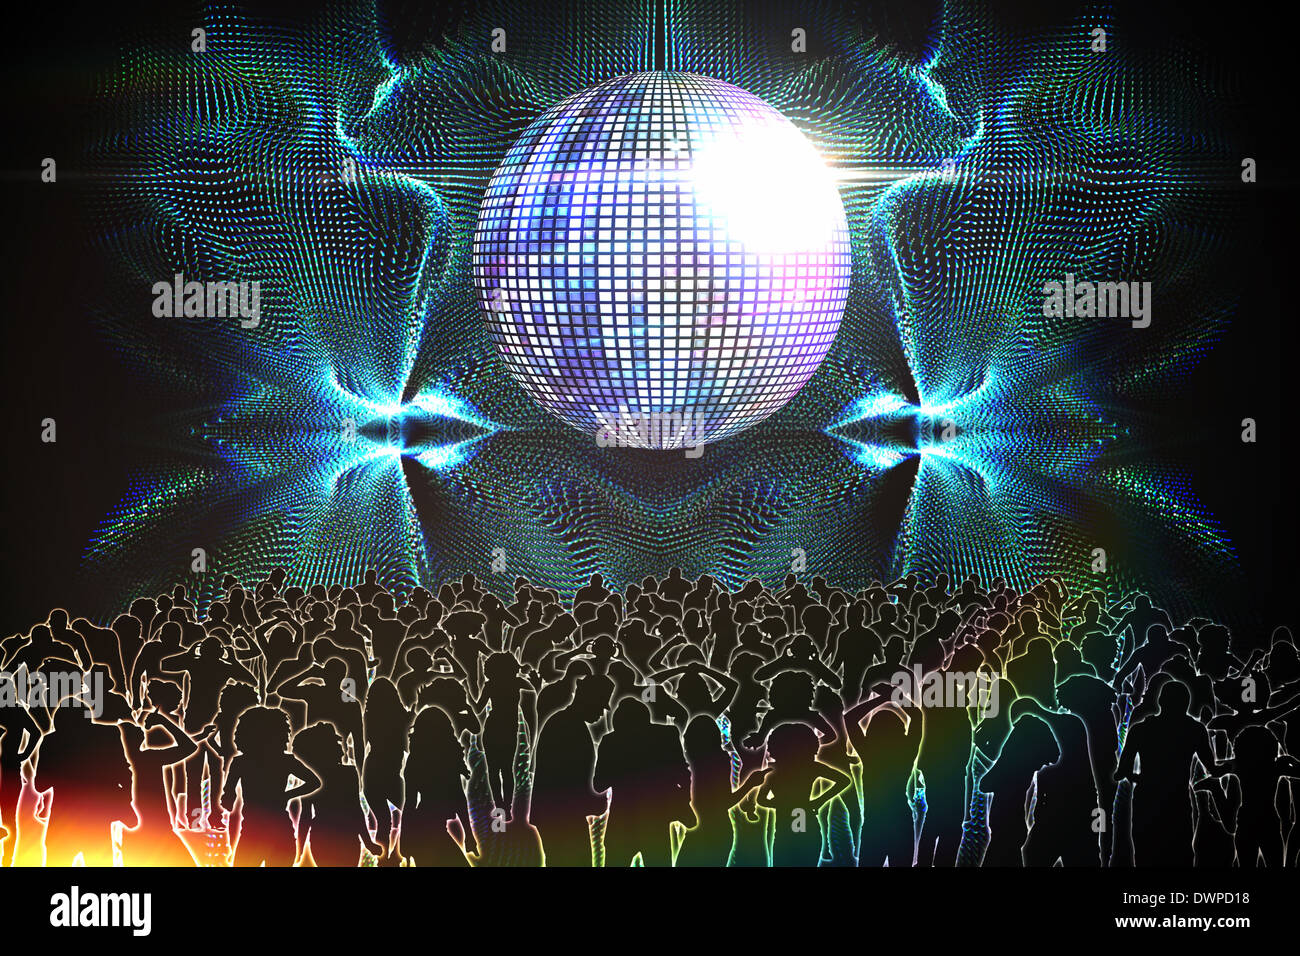 Digitally generated nightclub - Stock Image